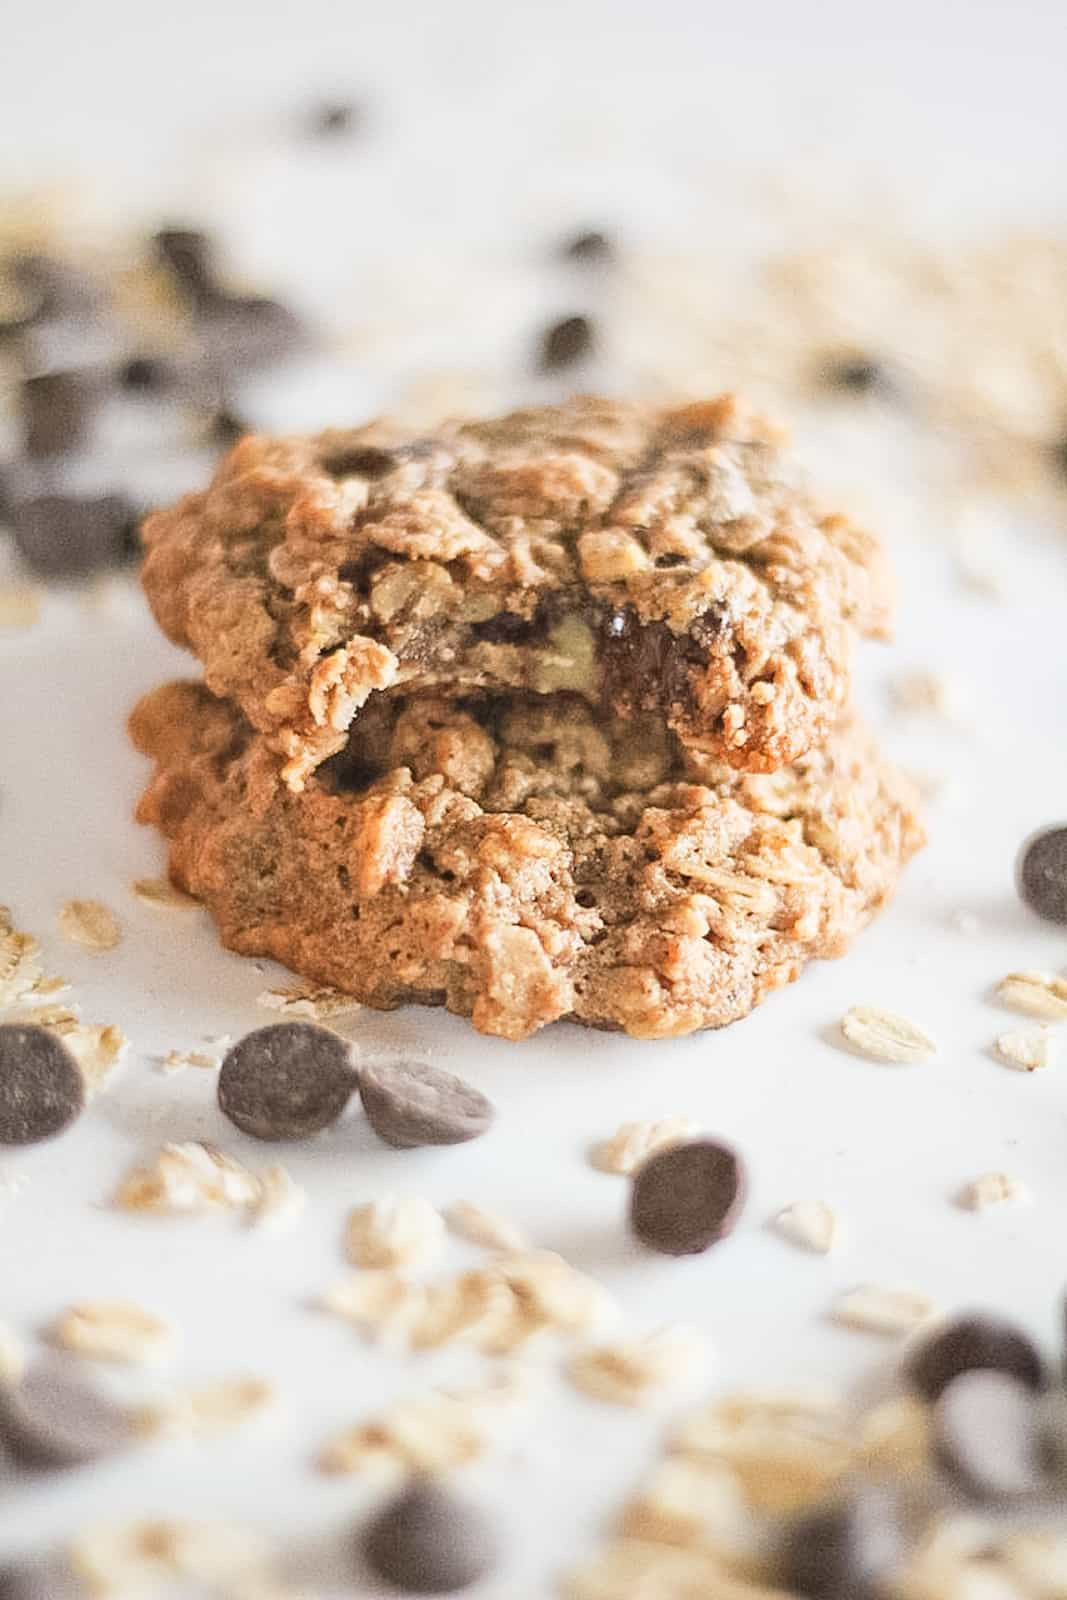 Bite out of a cookie surrounded by oats and chocolate chips.